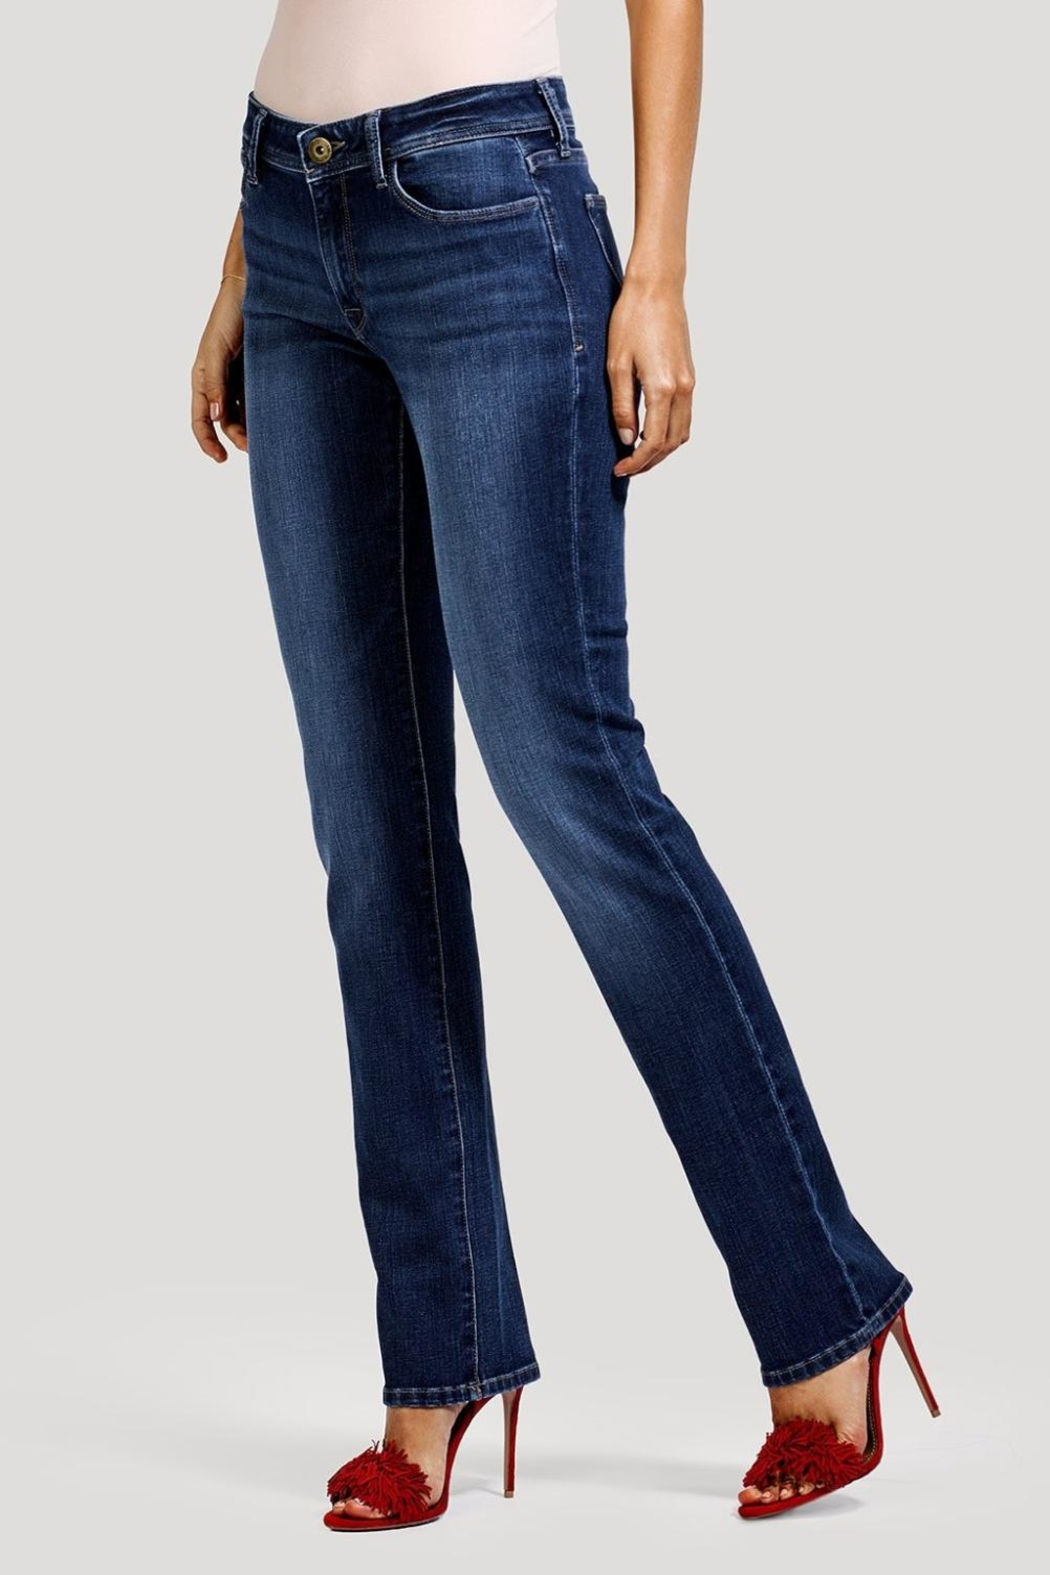 DL1961 Curvy Coco Pacific Jeans - Side Cropped Image